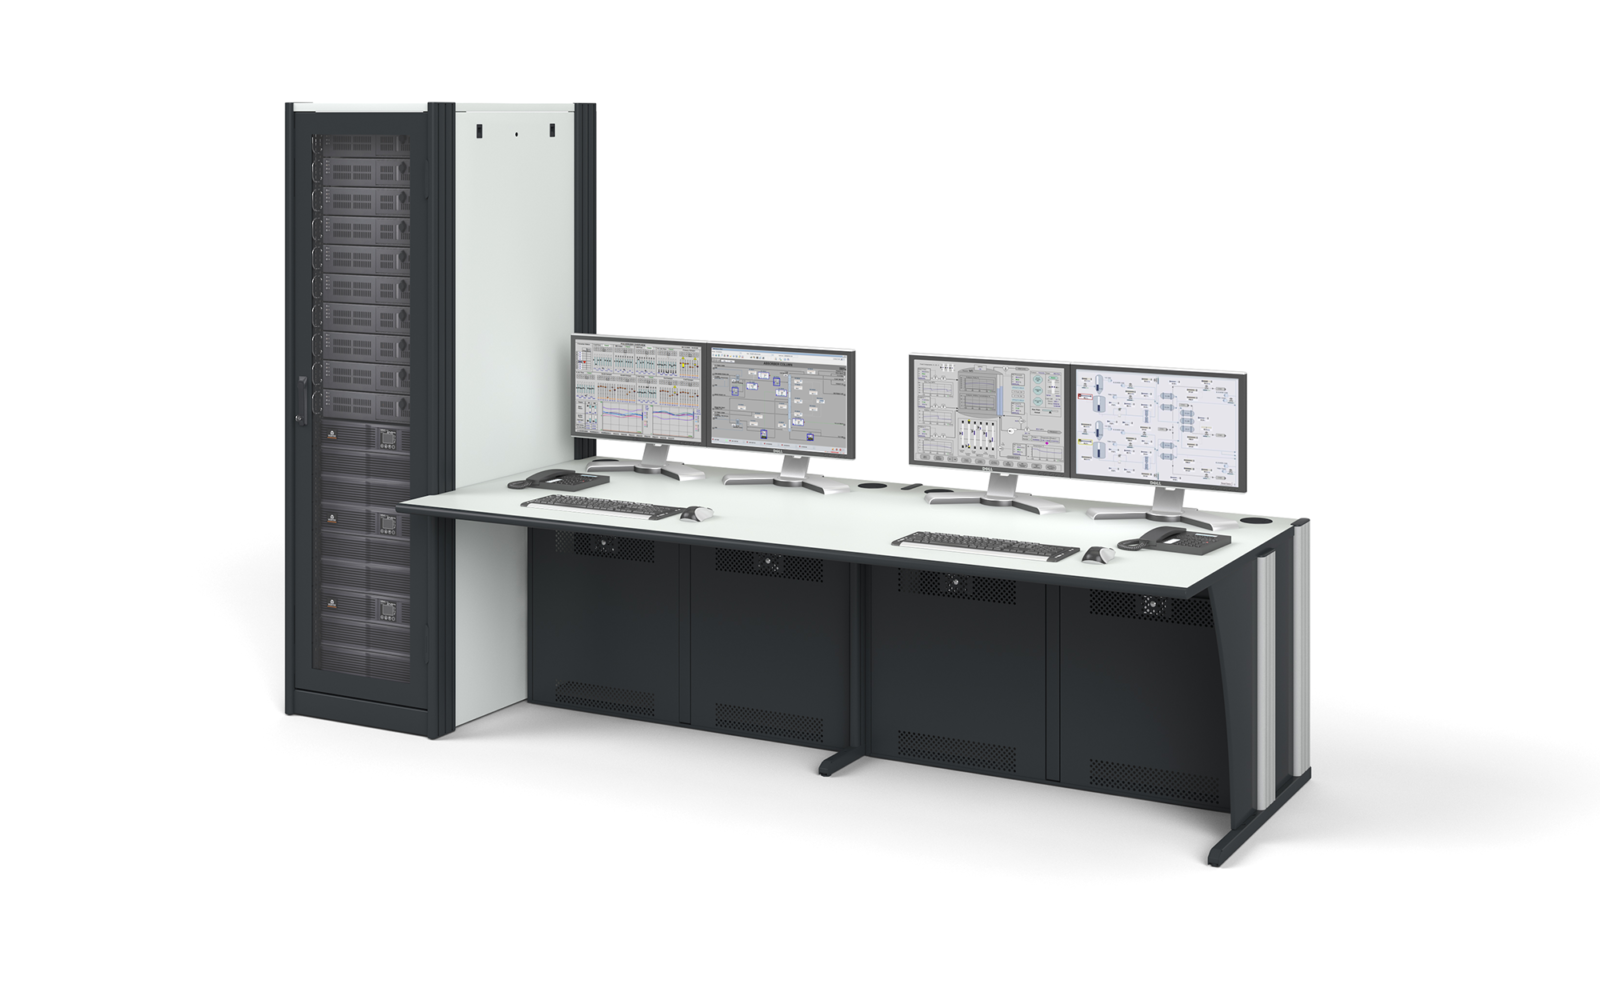 Dacobas workstation with server rack